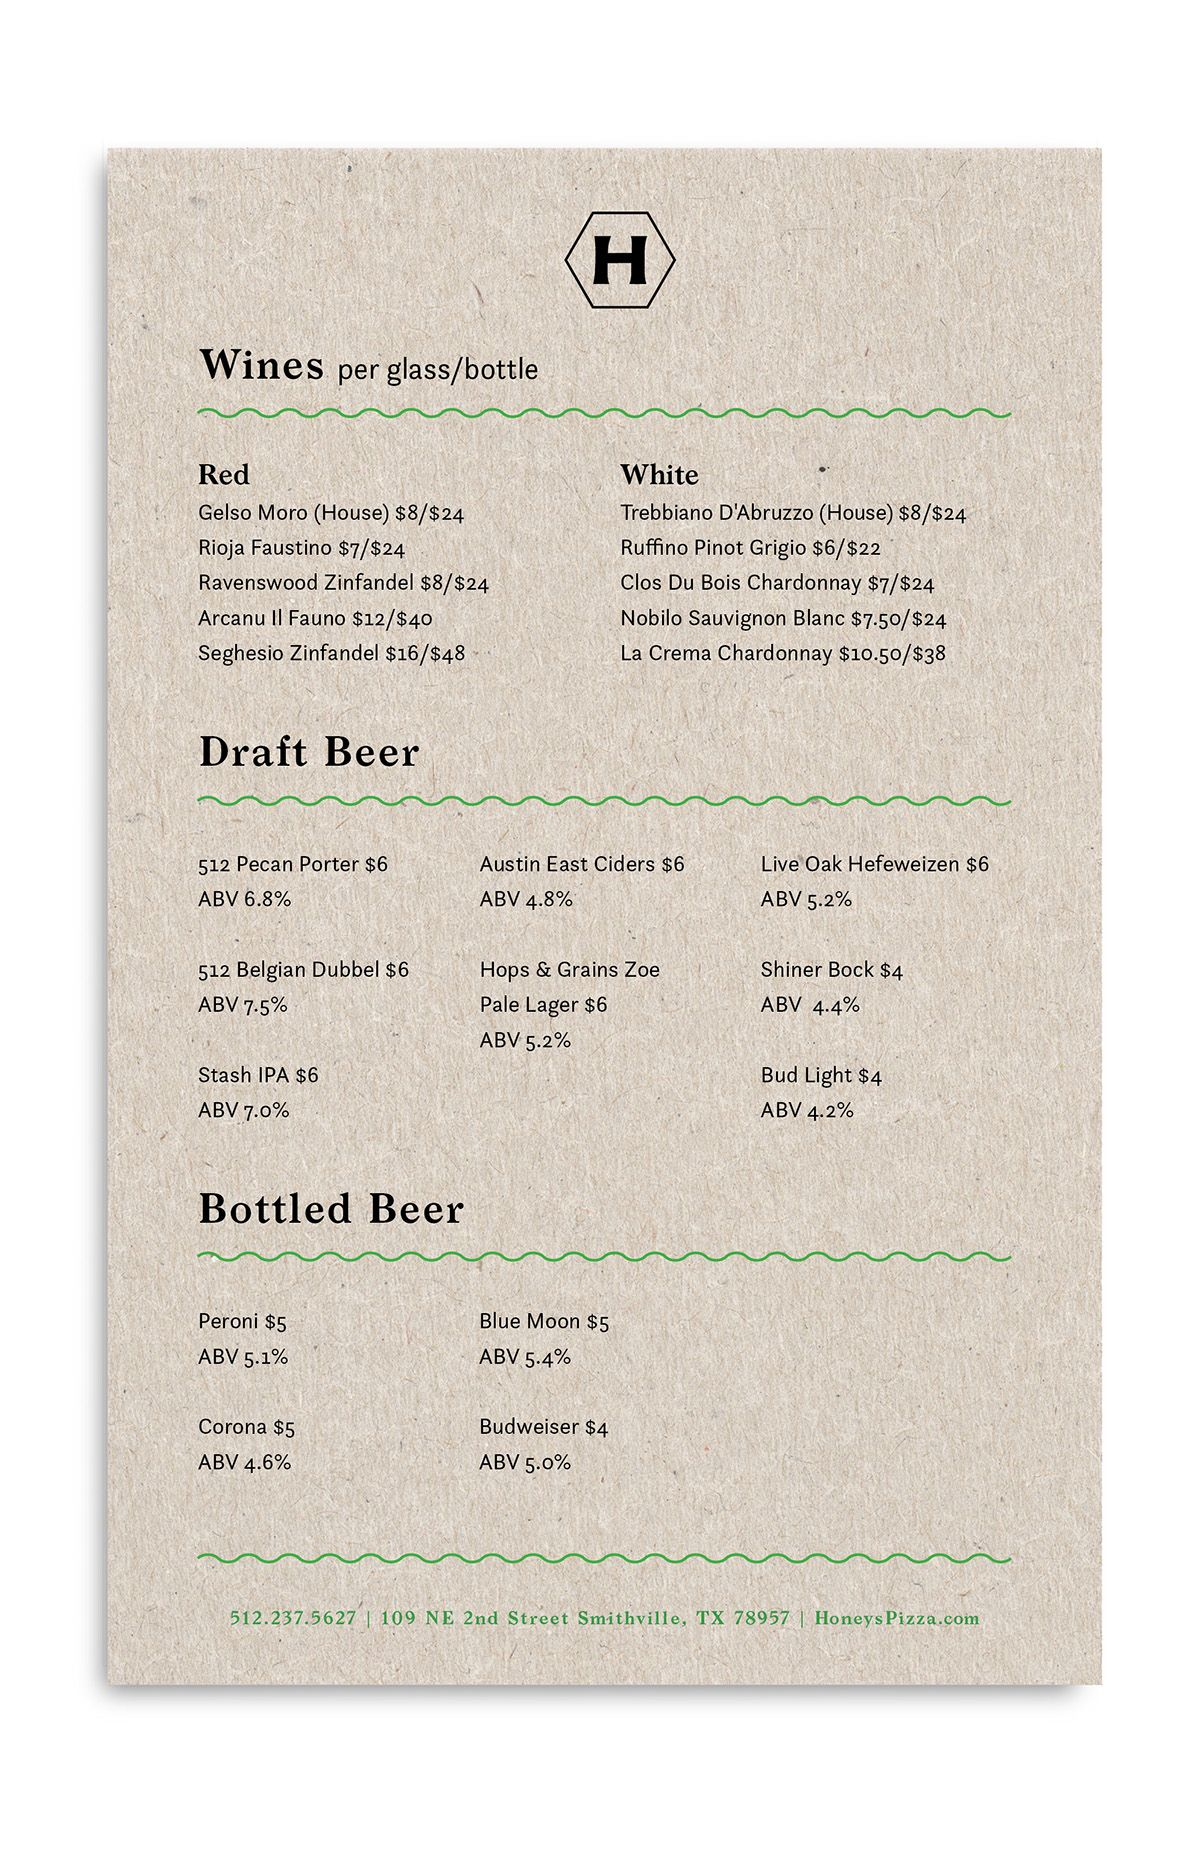 Honeyus paper menus pinterest